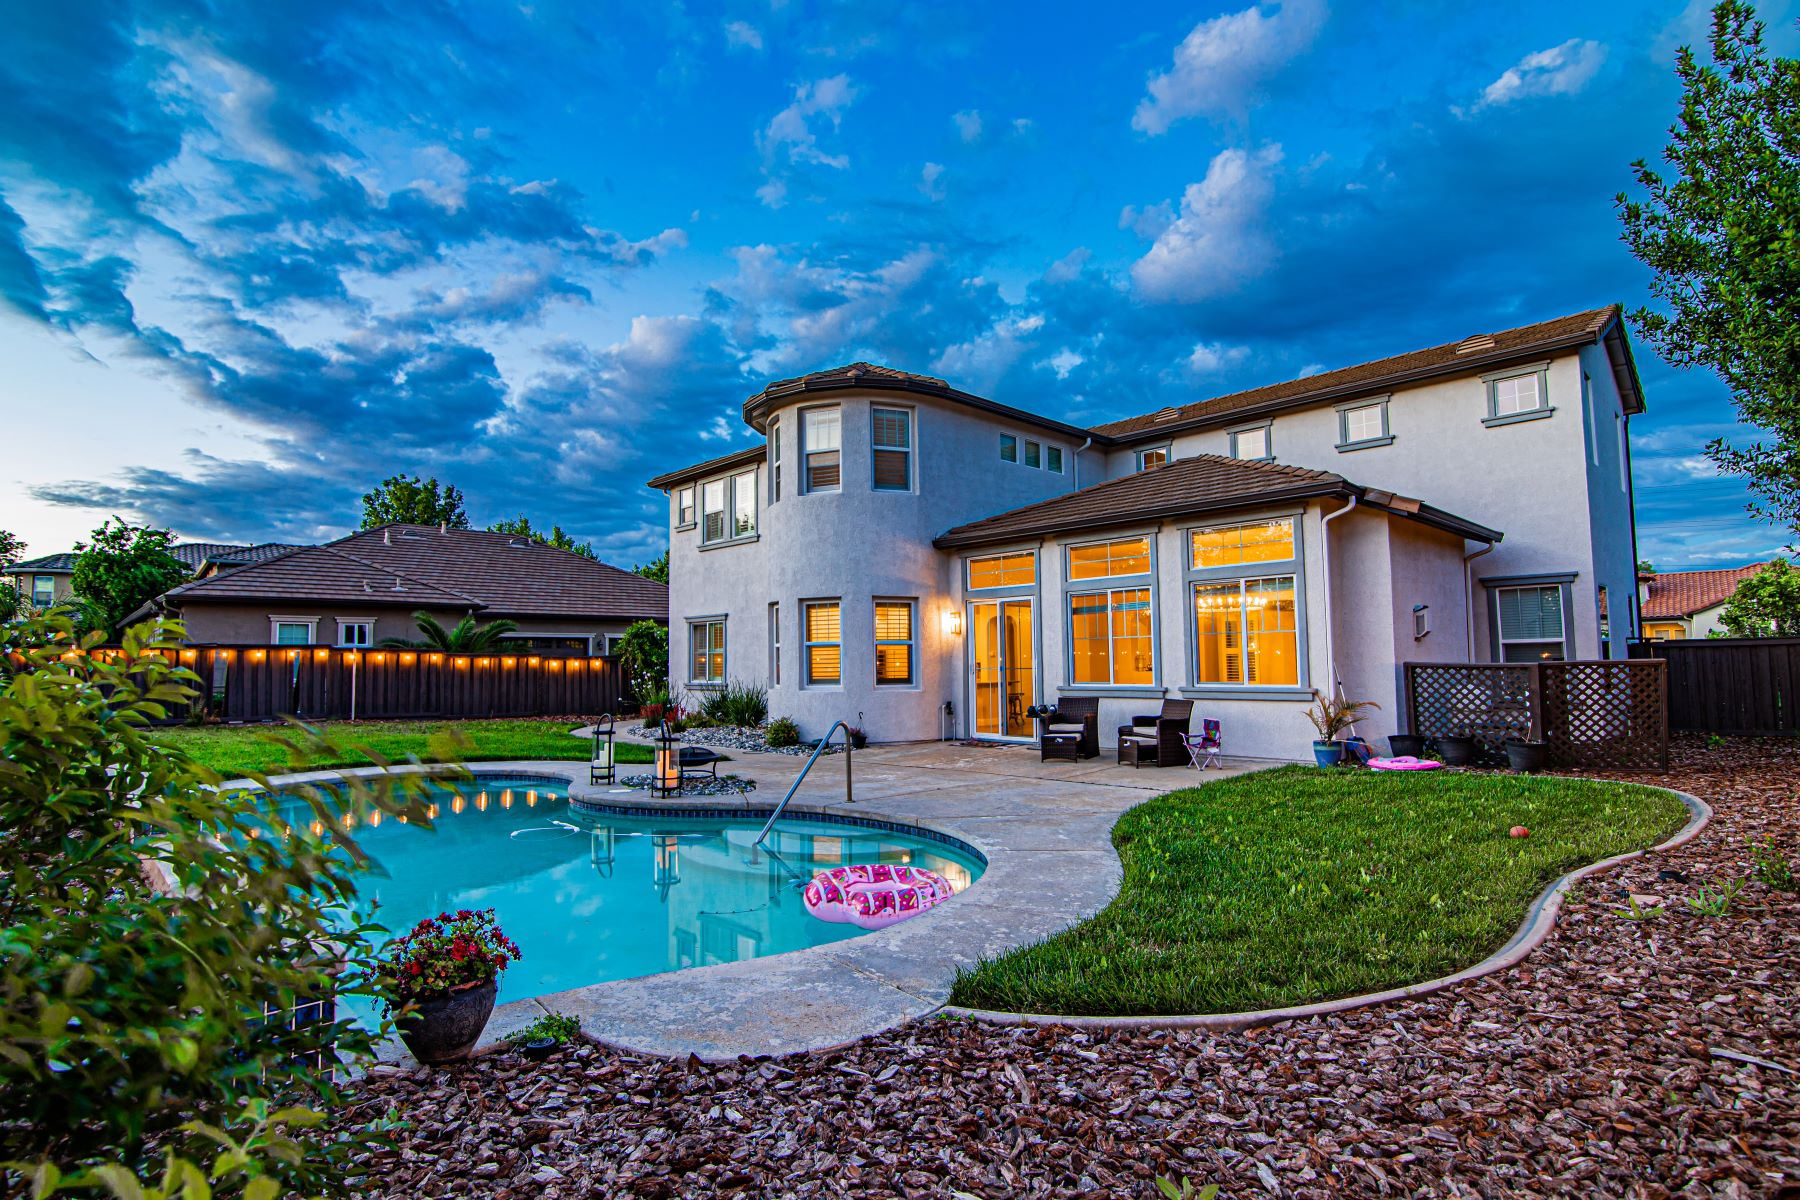 Single Family Homes for Sale at 9213 Eagle Springs, Roseville, CA, 95747 9213 Eagle Springs Roseville, California 95747 United States